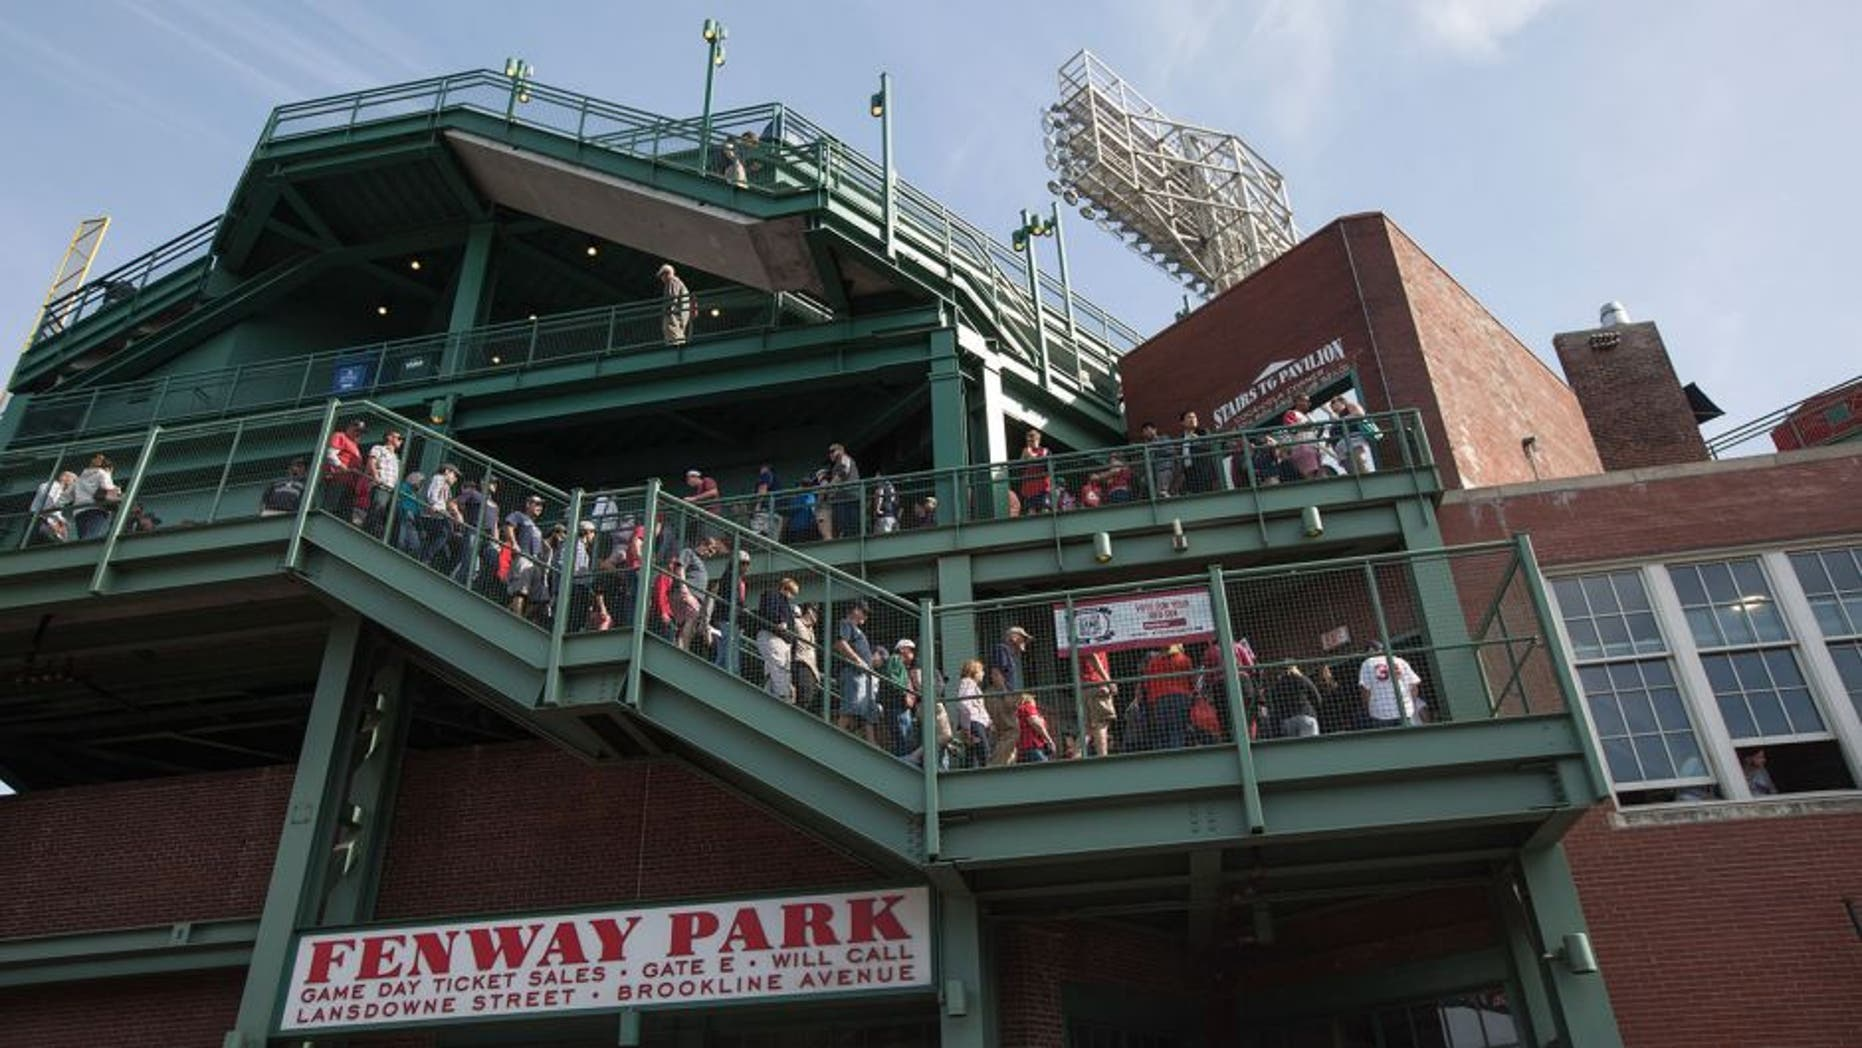 BOSTON - JUNE 7: Fans walk through Fenway Park in Boston, Mass., June 7, 2015. A little known, more than a century old so-called baseball rule, states that stadium owners and operators are not responsible for injuries sustained by foul balls or shards of bat so long as netted or screened seats are available to the vast majority of spectators. (Photo by Keith Bedford for The Boston Globe via Getty Images)